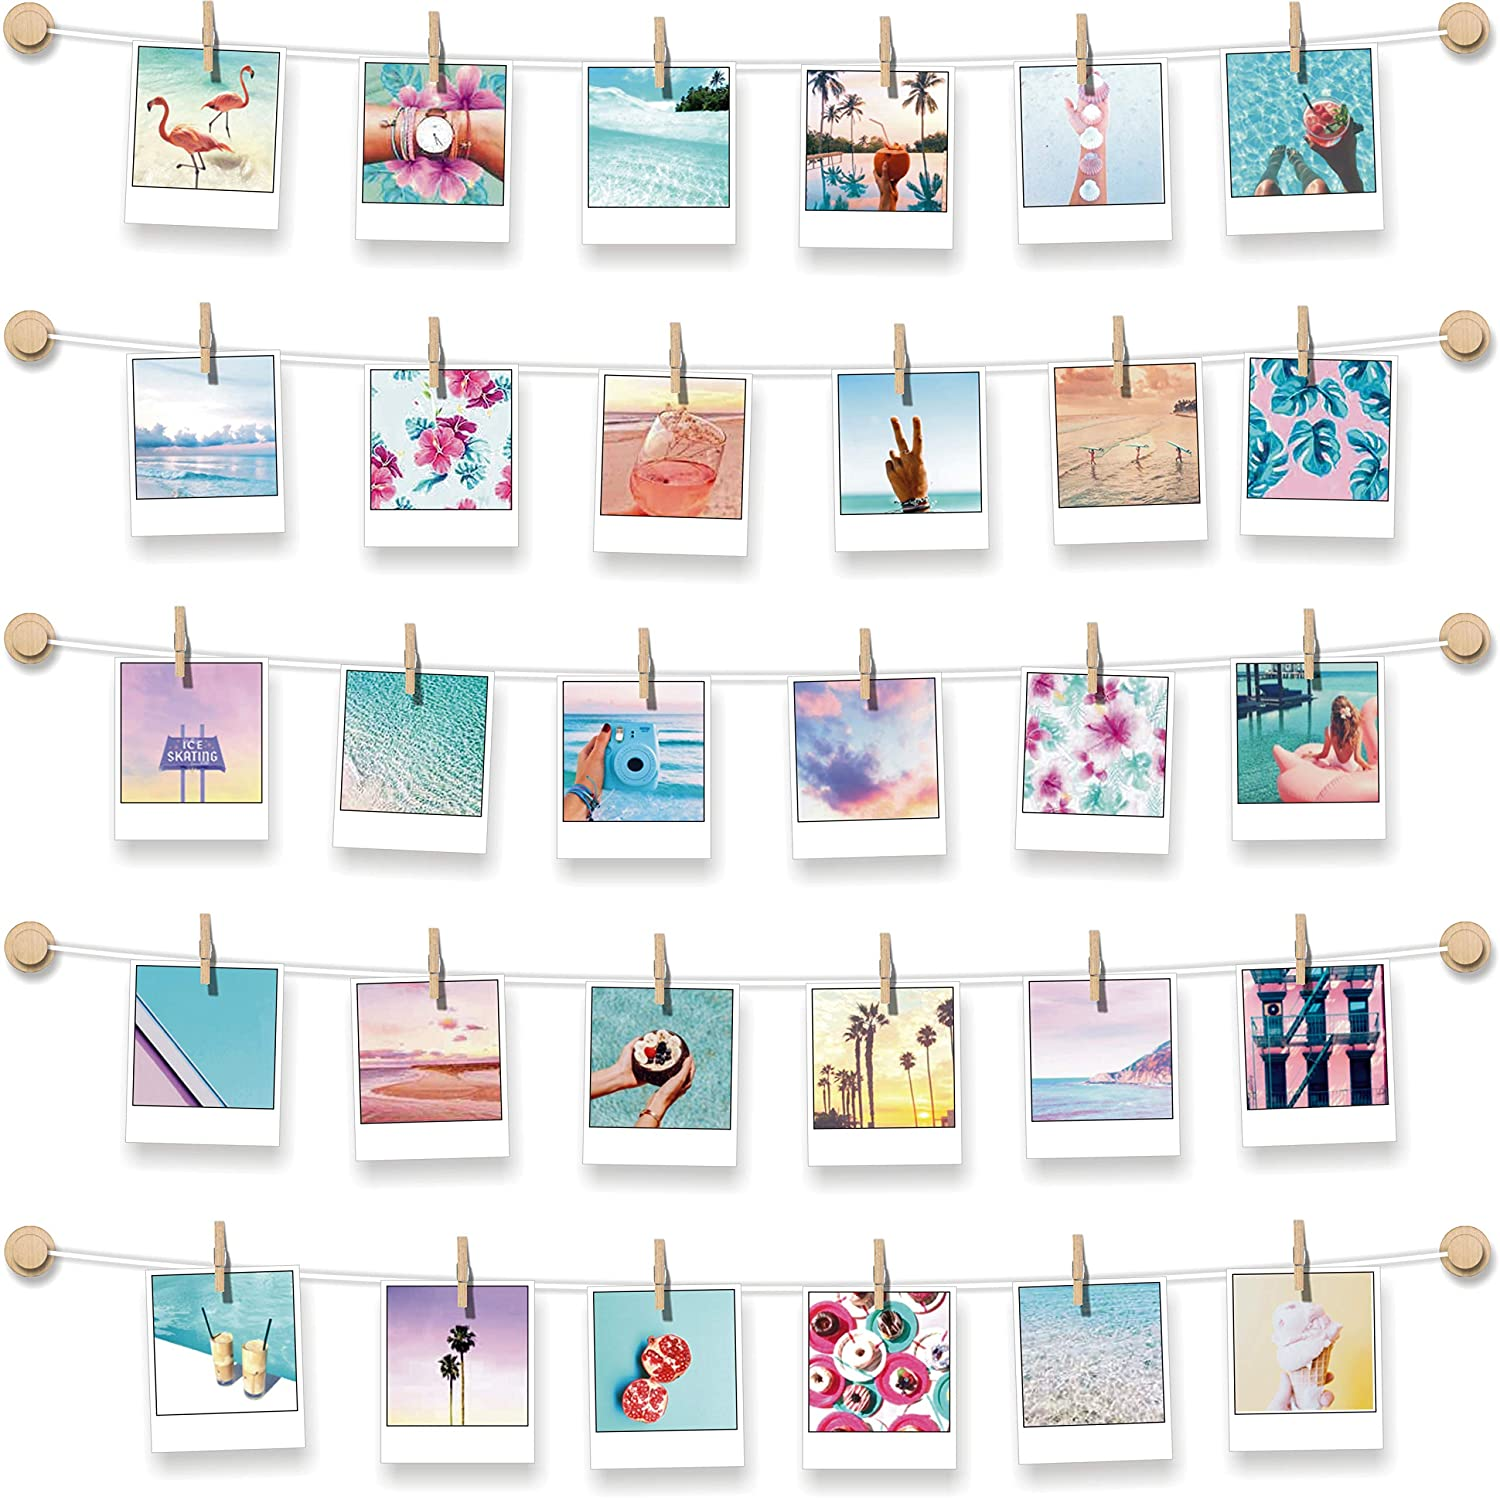 BIZYAC Instant Photo Display - Wall Hanging String with Clips - 3M Self Adhesive - Stick and Hang - No Wall Holes Drilling - 30 x 30 inch